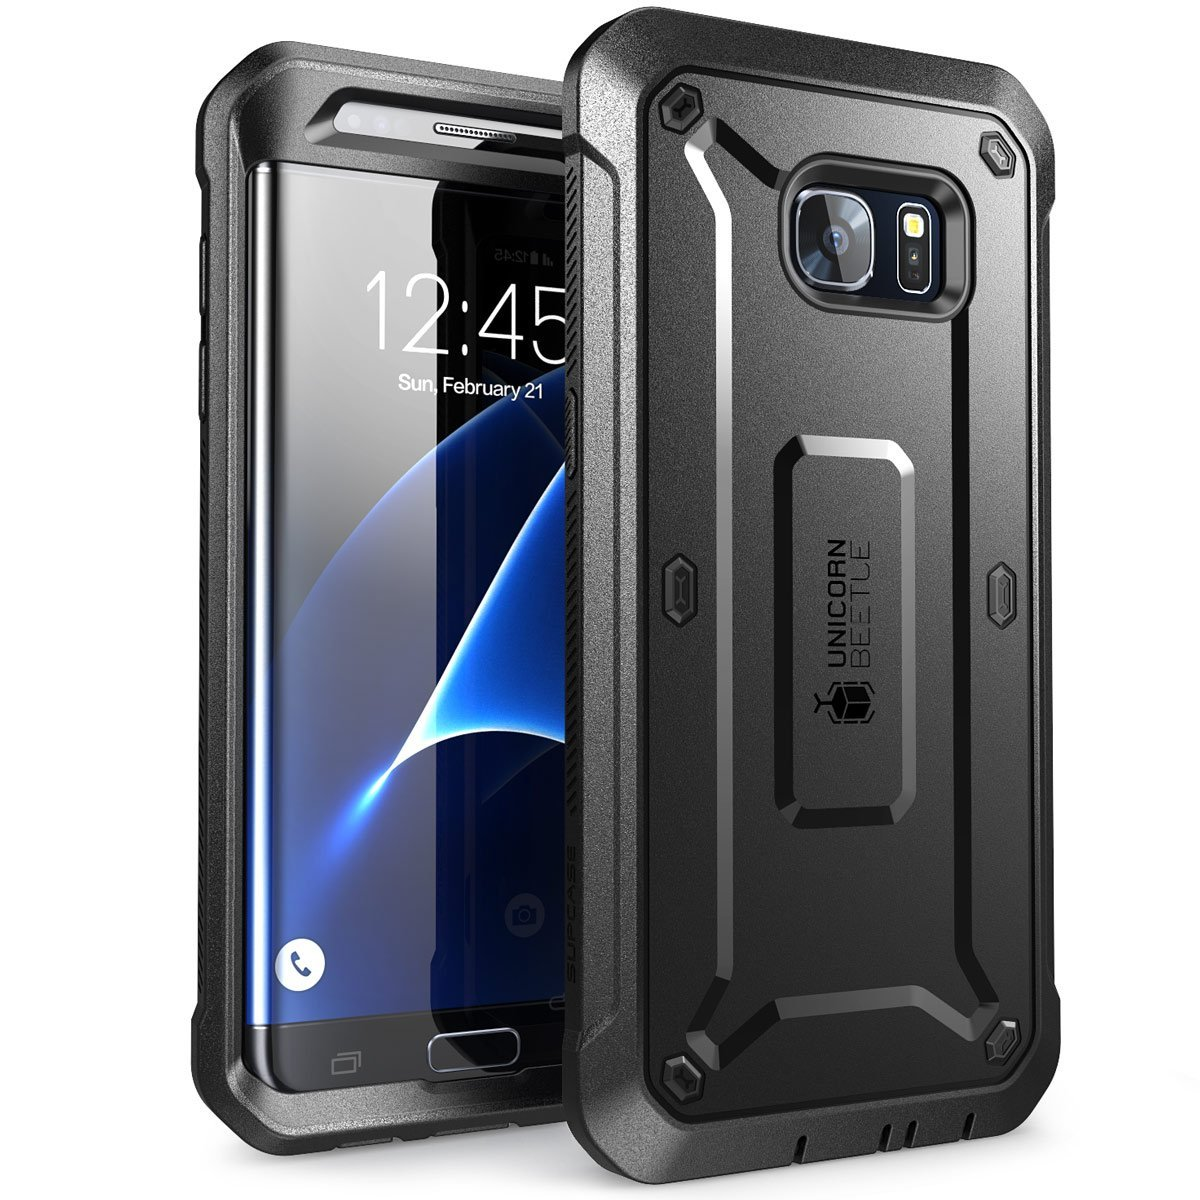 Best Samsung Galaxy S7 Edge Cases Phandroid